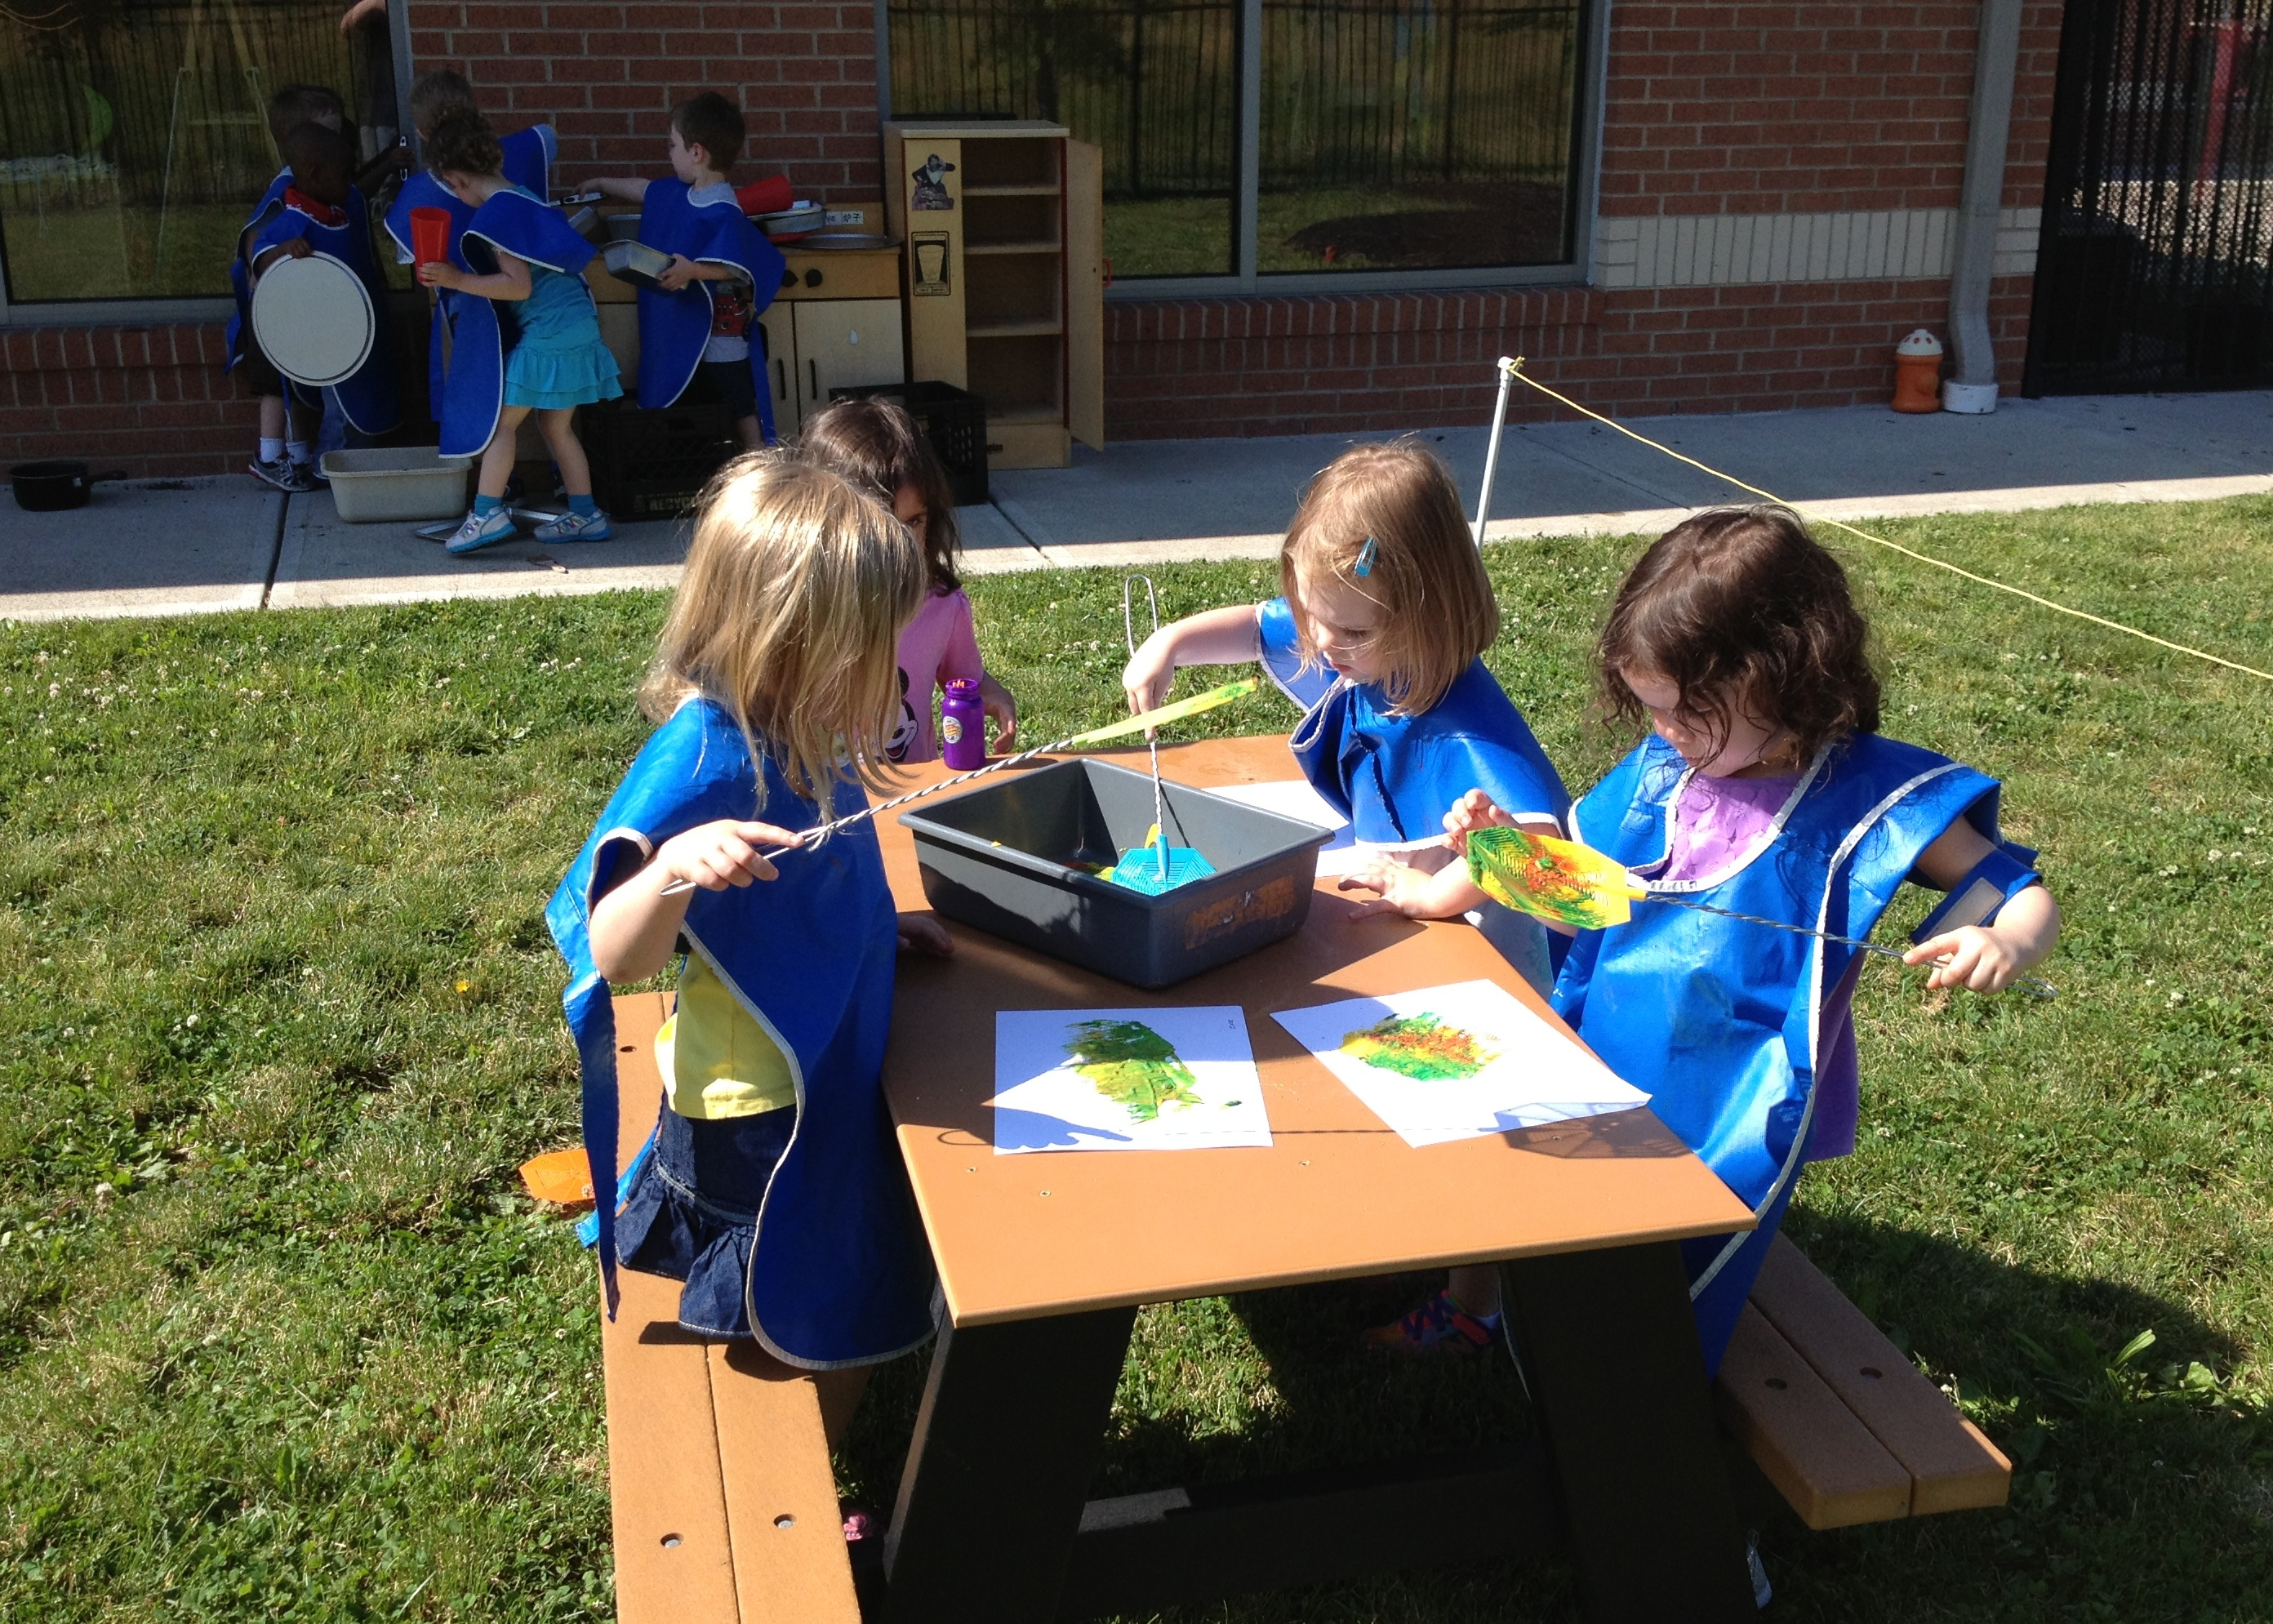 Classroom Ideas For Toddlers : Day nursery outdoor classroom provides meaningful